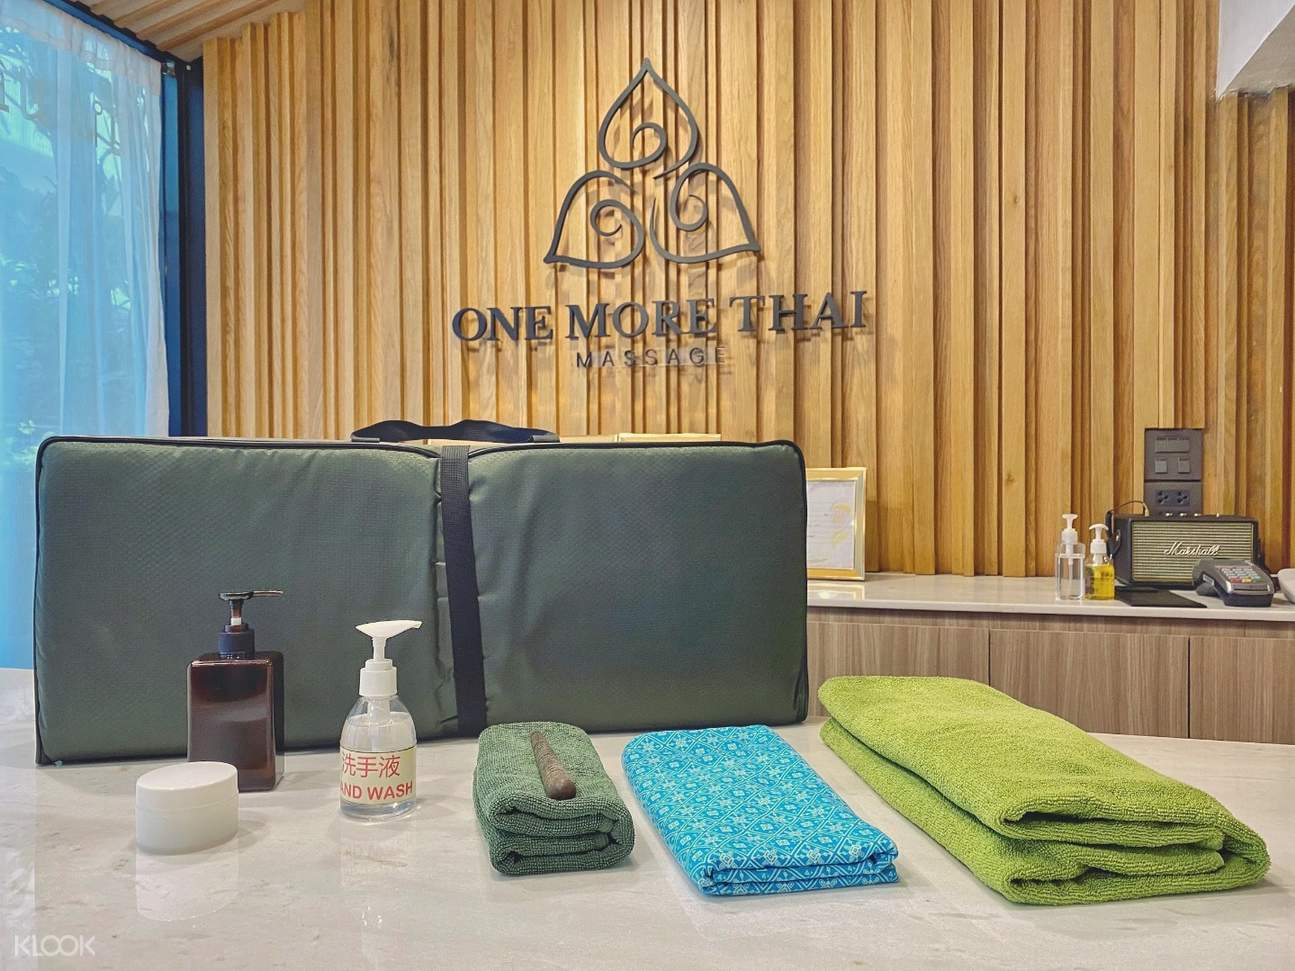 Book the famous massage & spa service in Bangkok that meet government hygienic standard